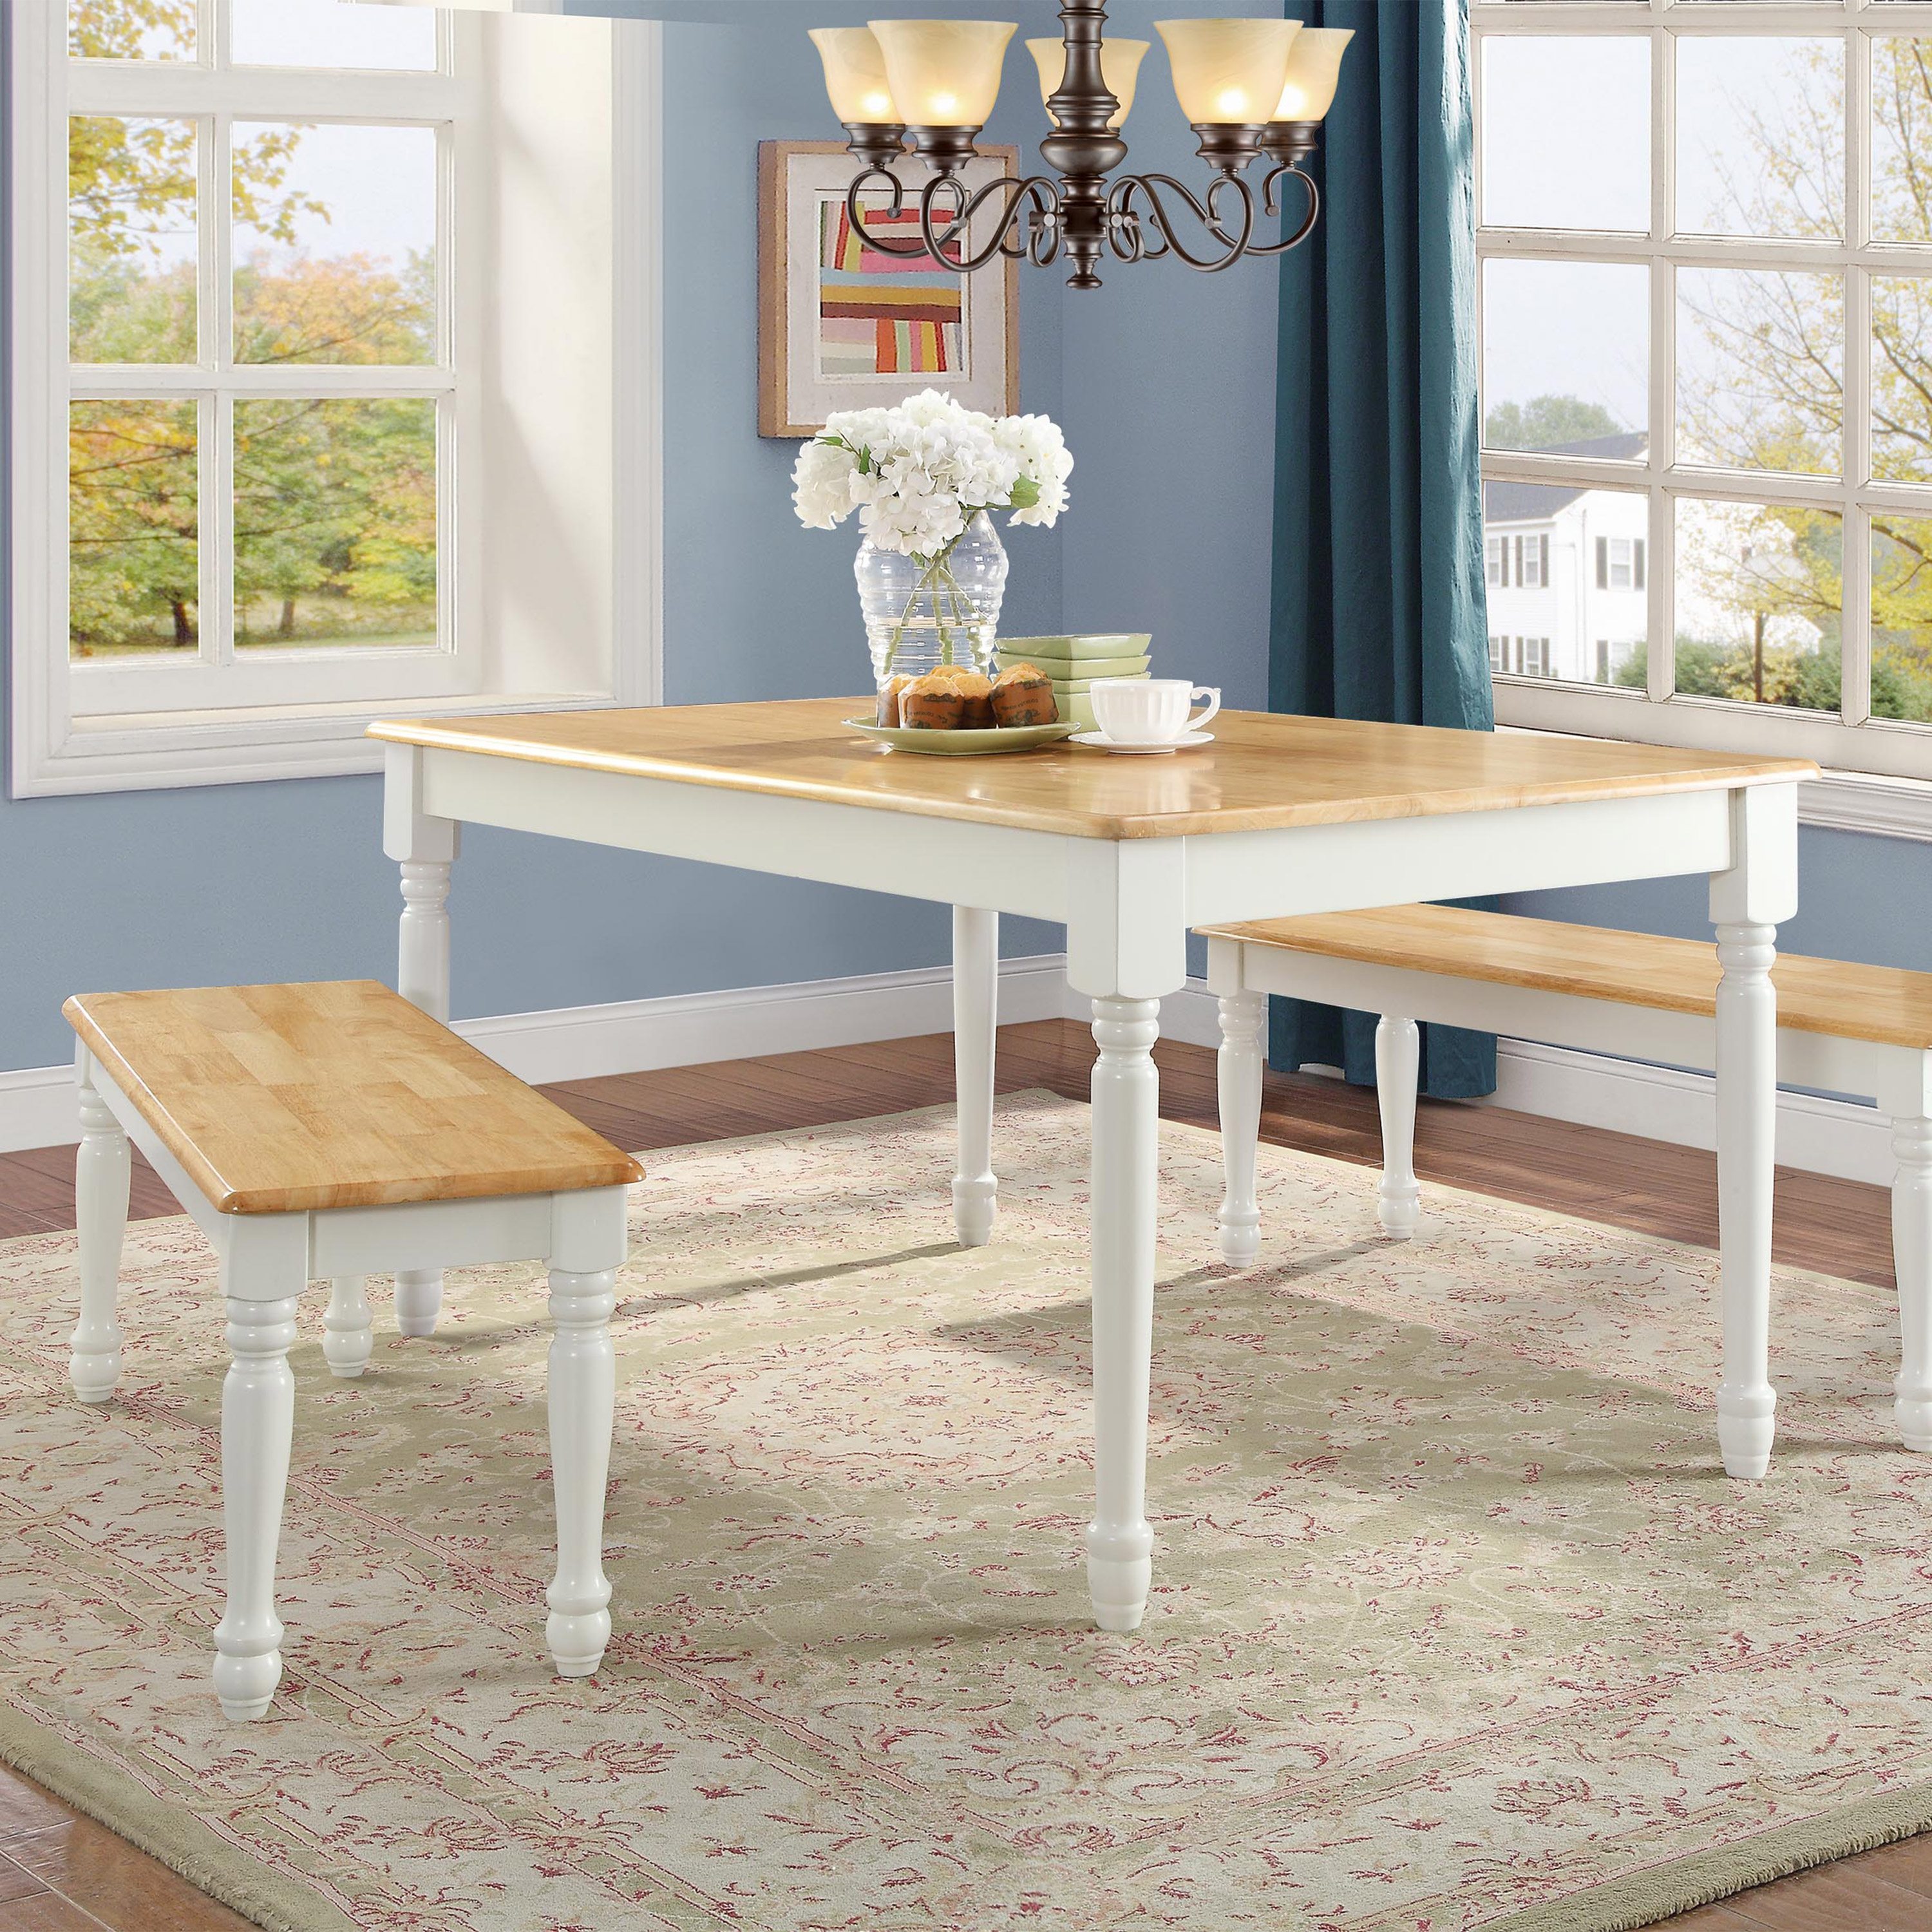 Better Homes and Gardens Autumn Lane 3-Piece Dining Set, White and Natural